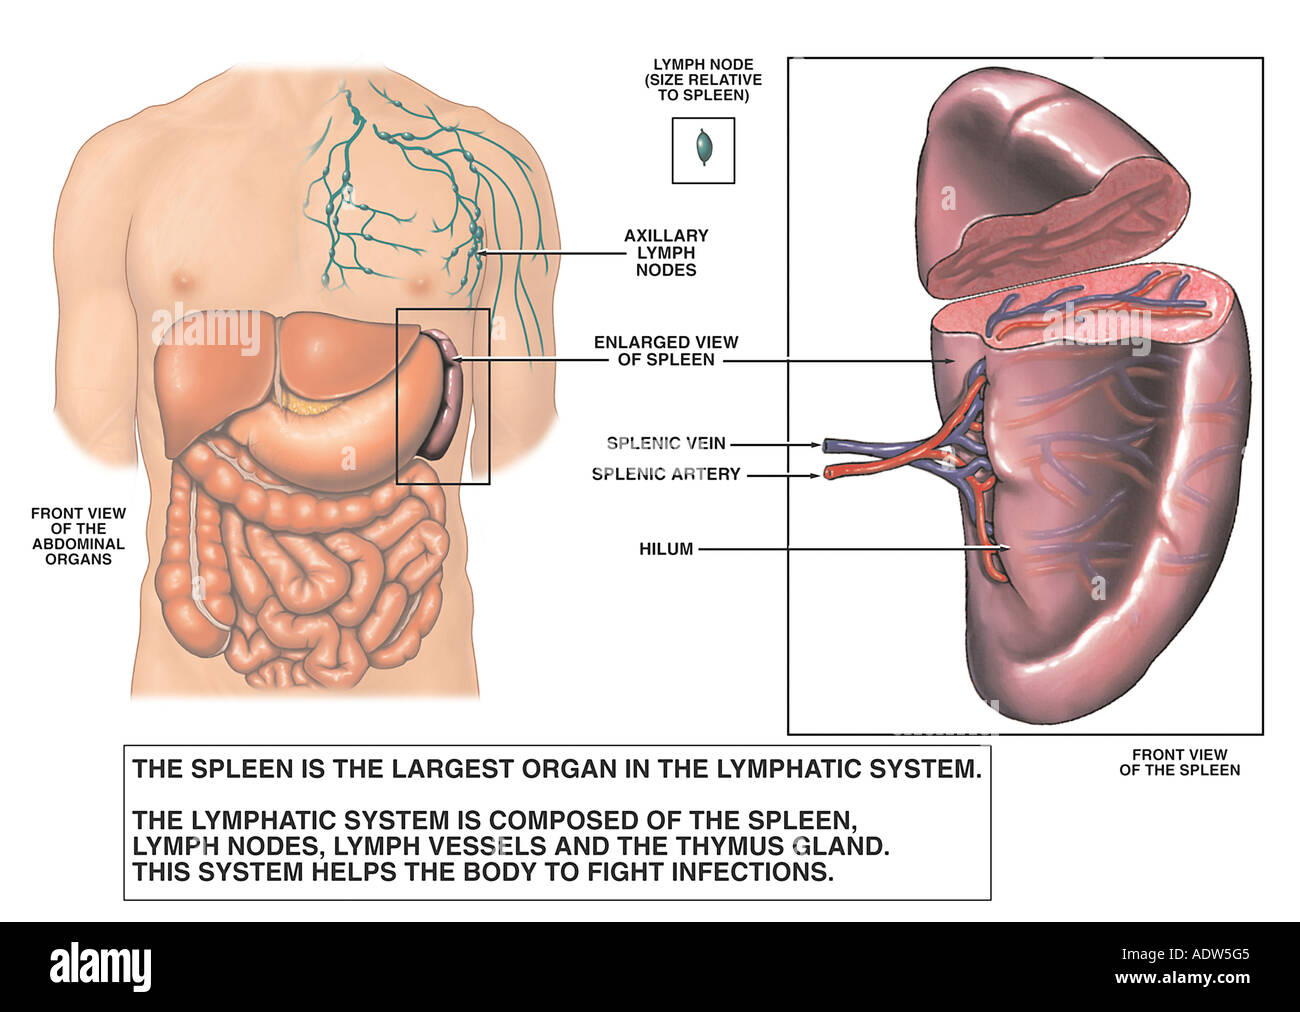 Anatomy of the Spleen Stock Photo: 7711940 - Alamy